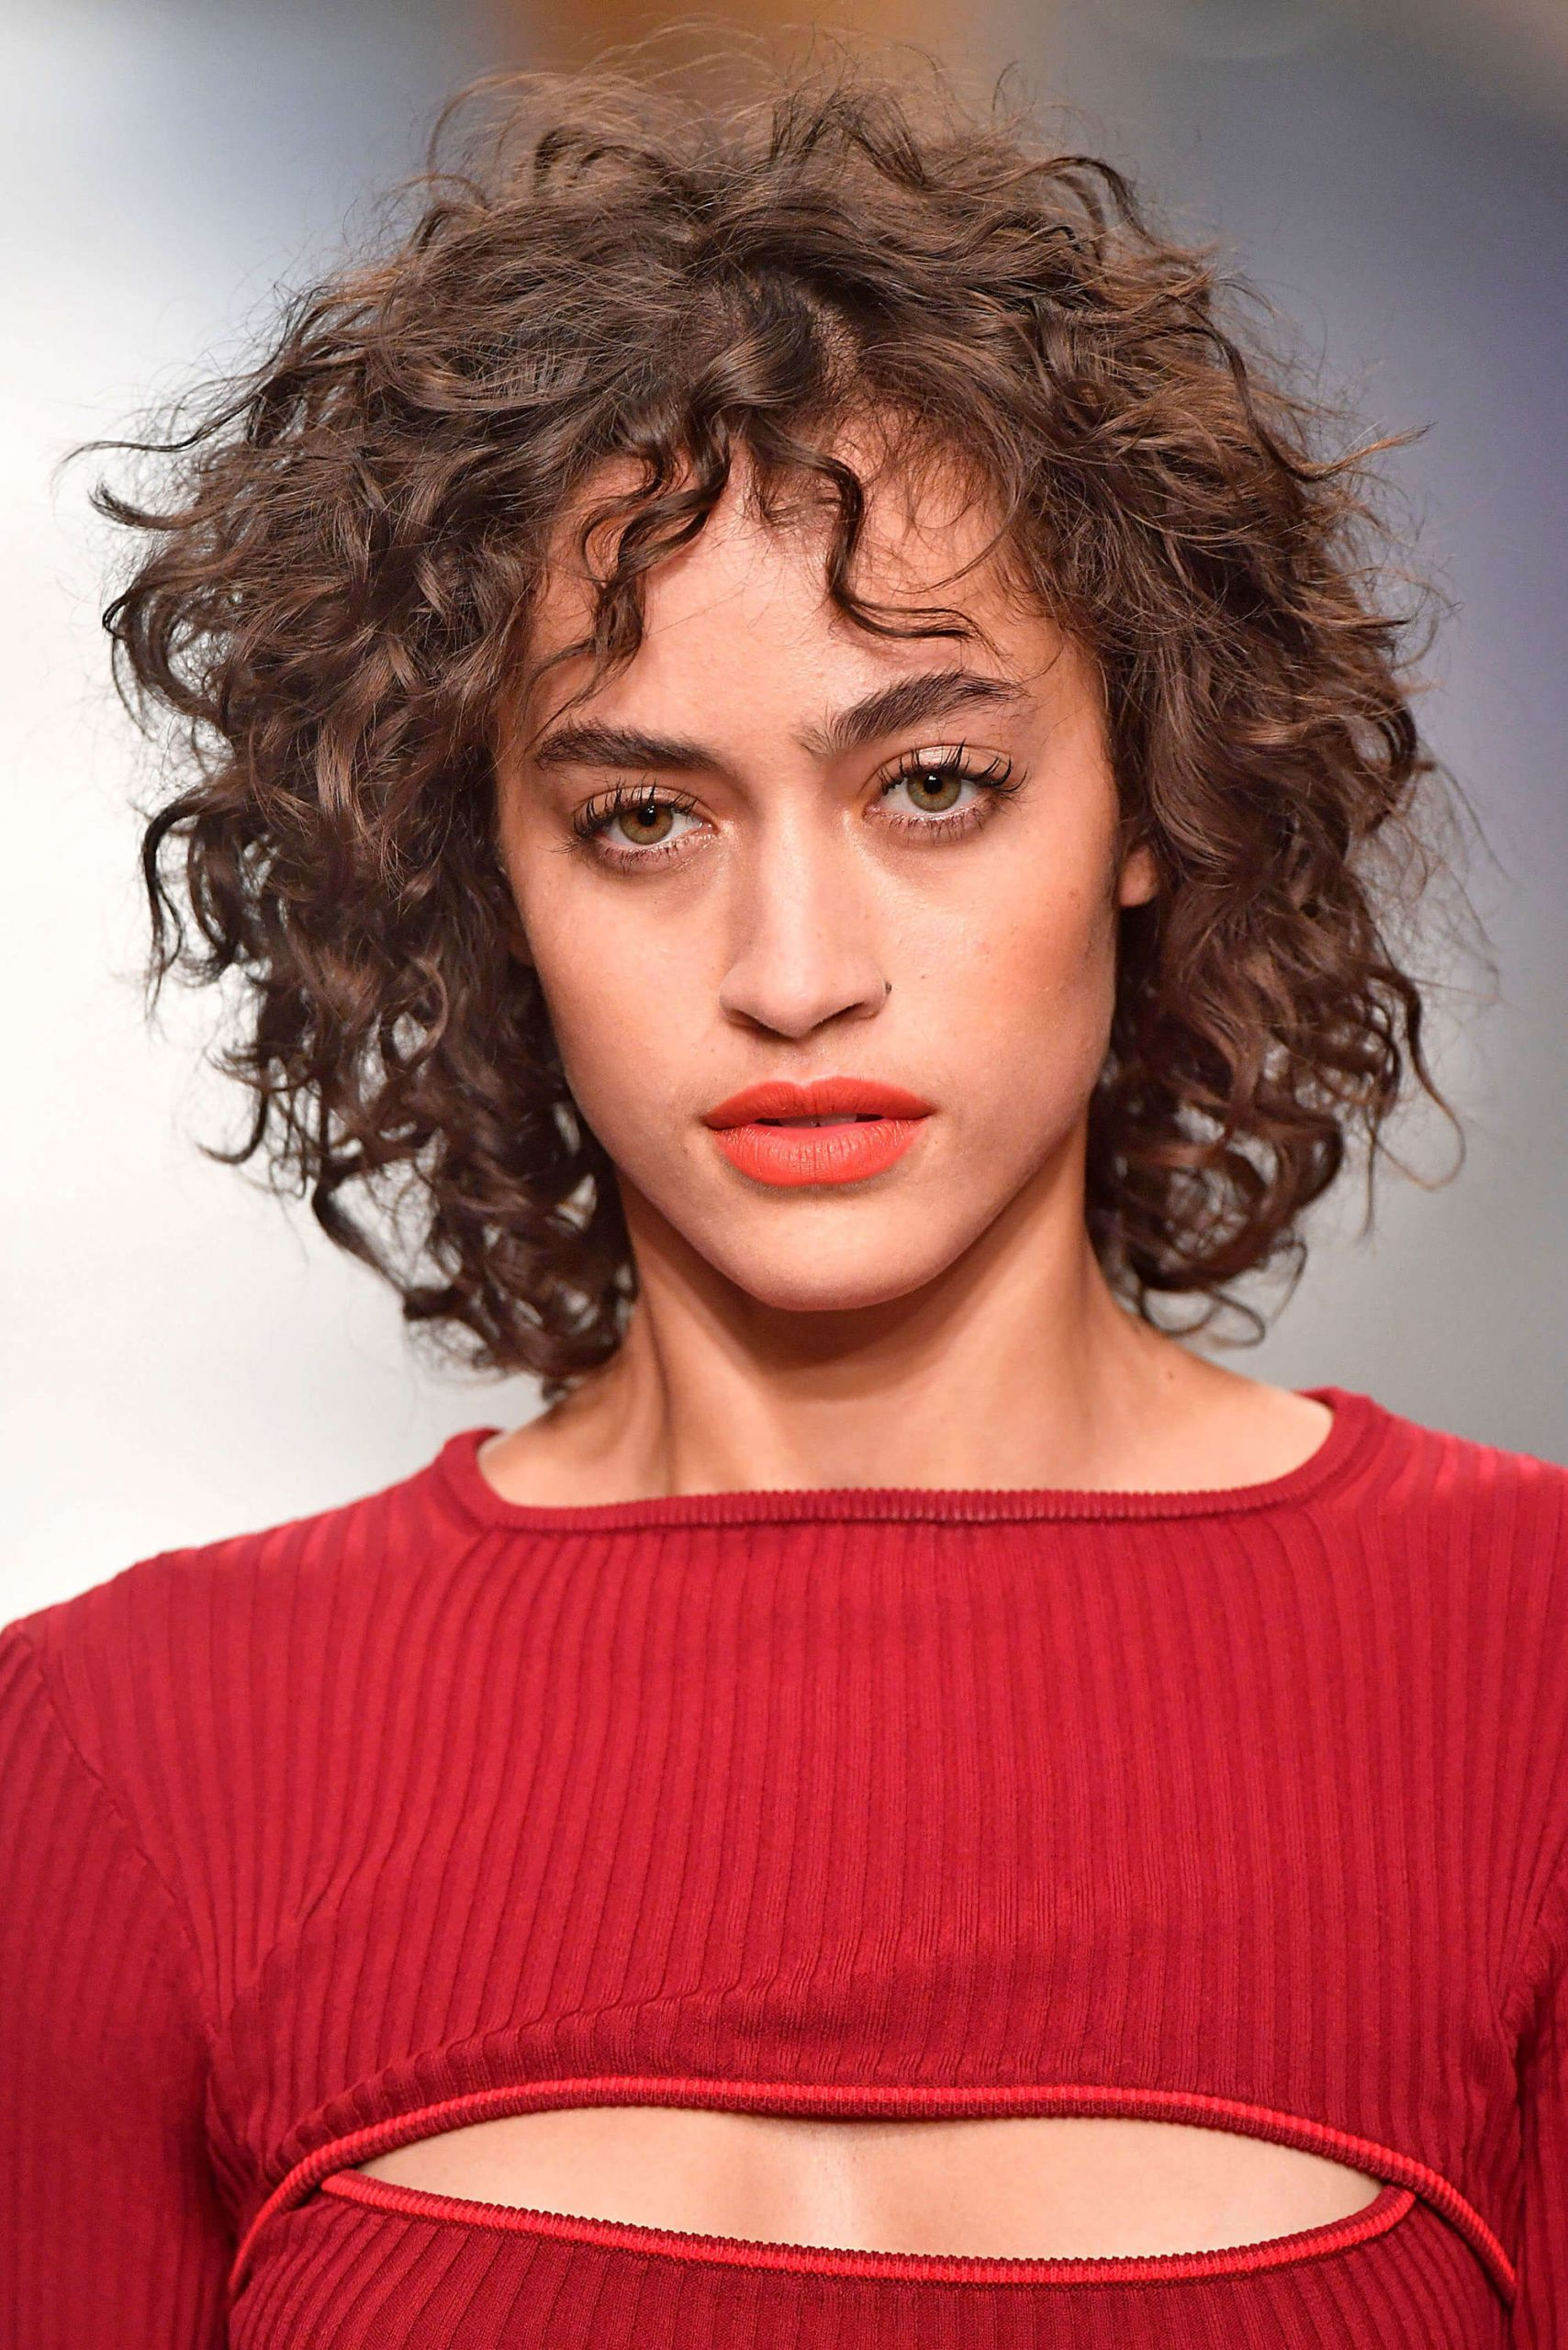 Naturally Curly Hair Hairstyles  15 Transitioning Hairstyles to Try for Natural Hair this